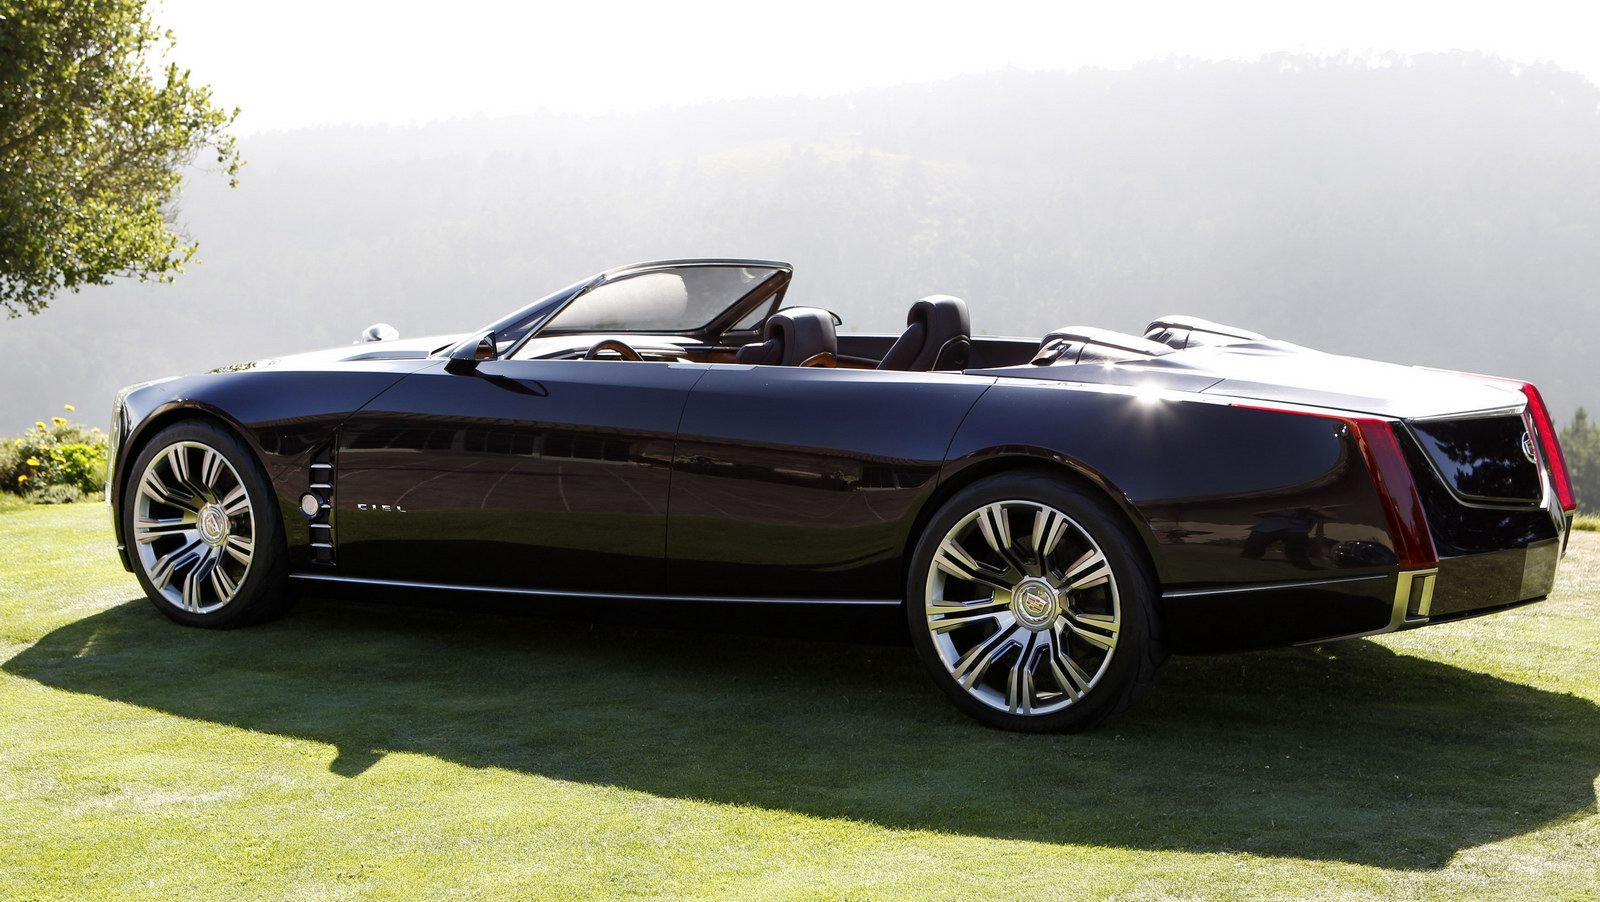 2016 Cadillac Convertible >> Cadillac Convertible 2013 Review Amazing Pictures And